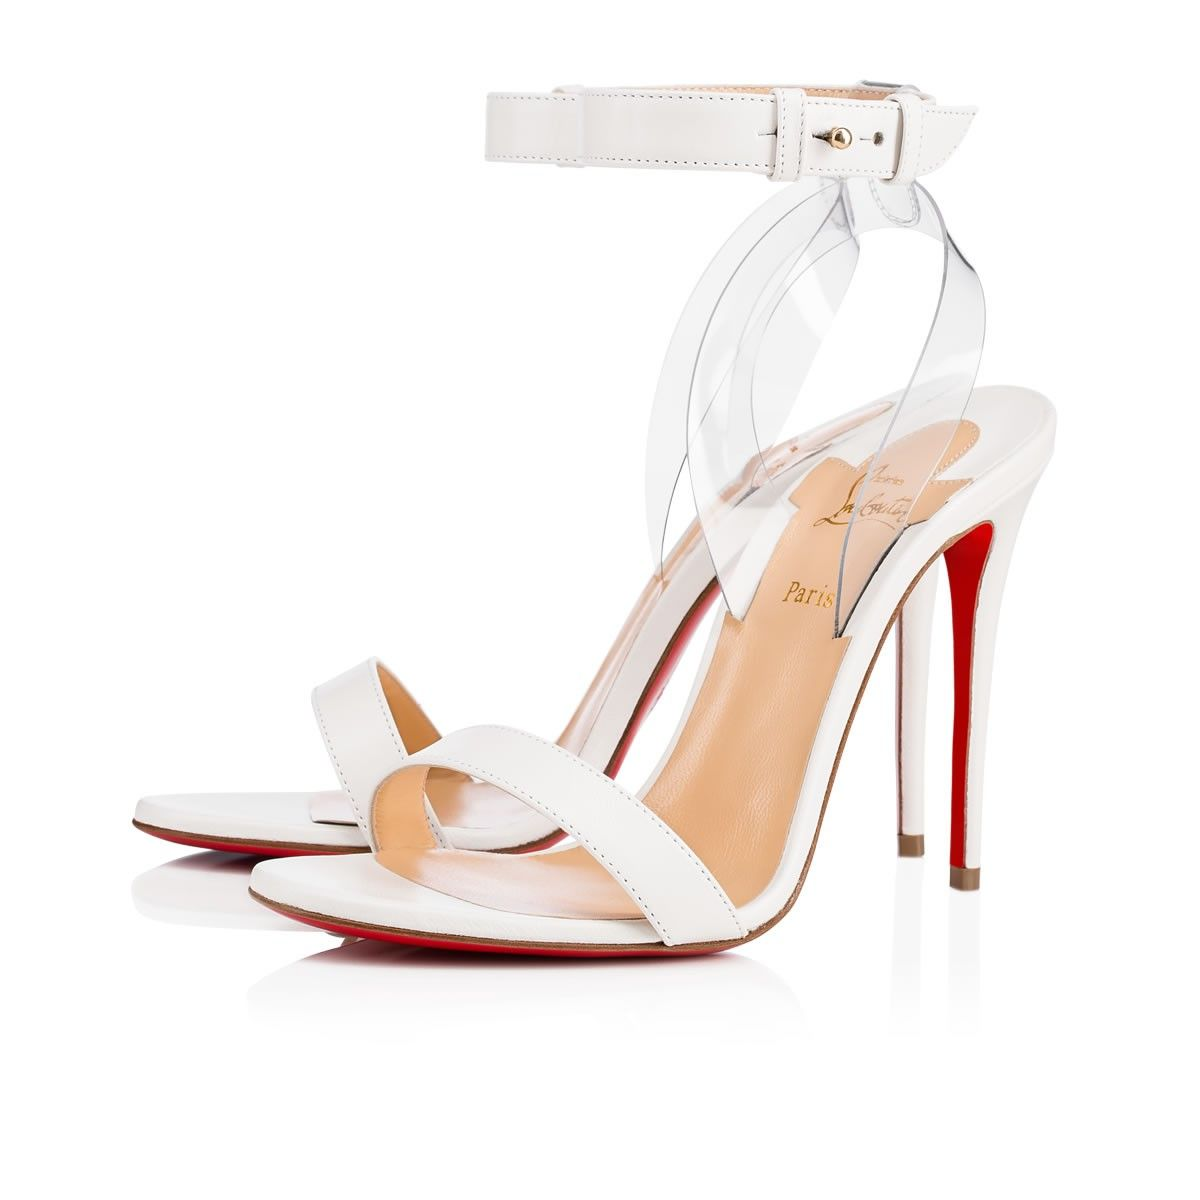 Jonatina Embodies Minimalist Elegance A Transparent Pvc Heel Feature Creates The Illusion Of Ankle Strap Sandals Heels Christian Louboutin Minimalist Shoes